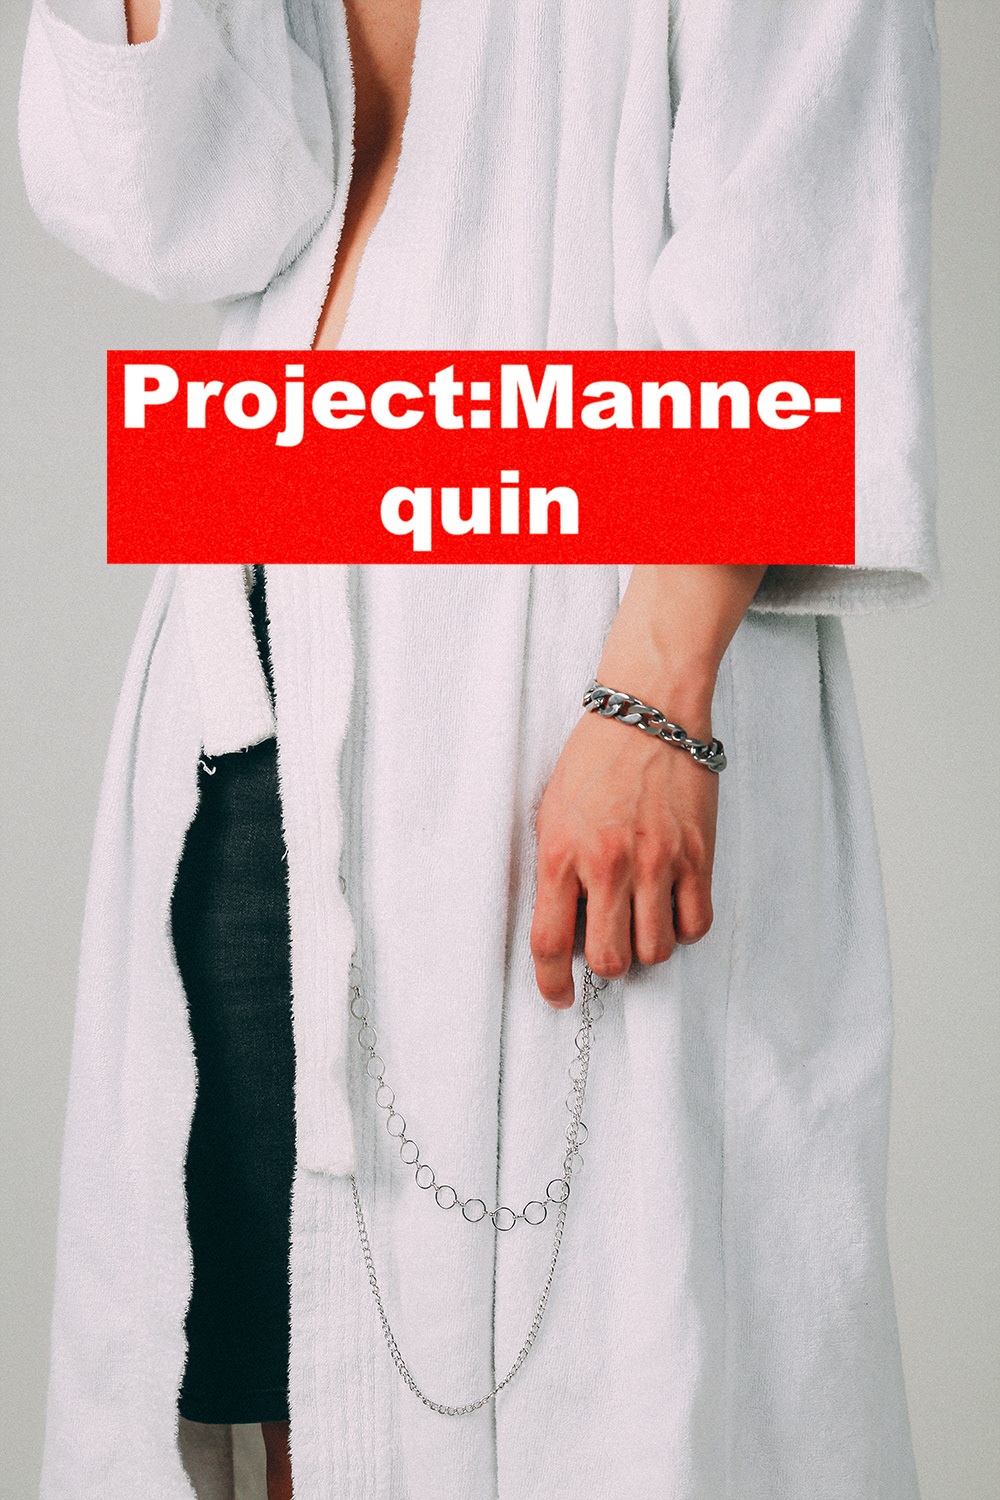 THE SIXX PICTURES - PROJECT:MANNEQUIN